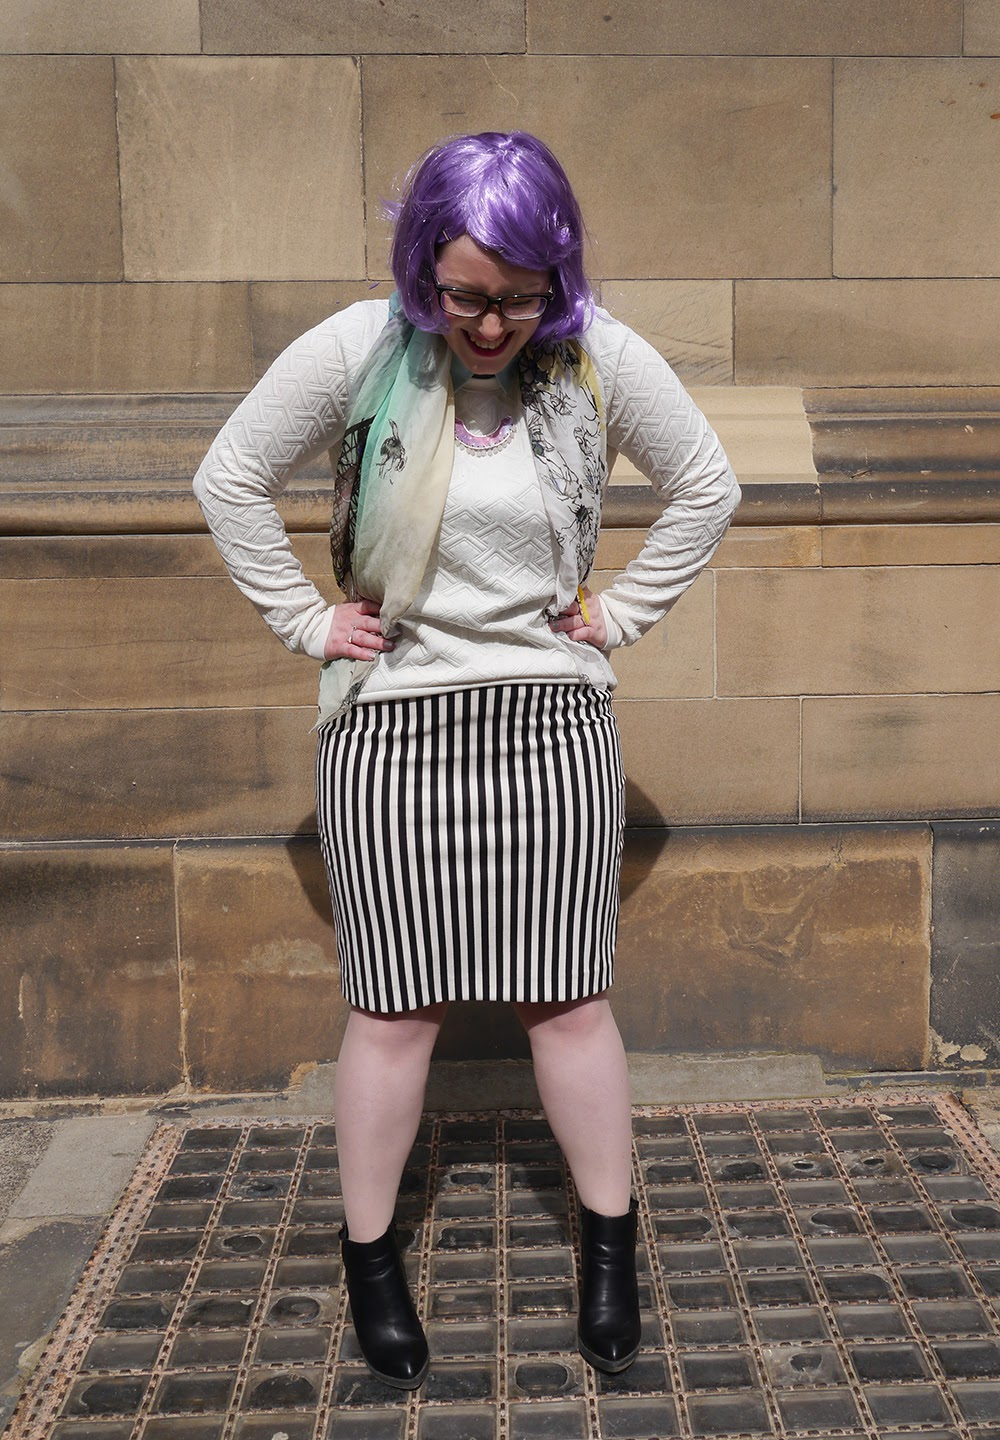 #scotstreetstyle, #EdFashion, Edinburgh, street style, monochrome, stripe, Wear Eponymous, Naromode